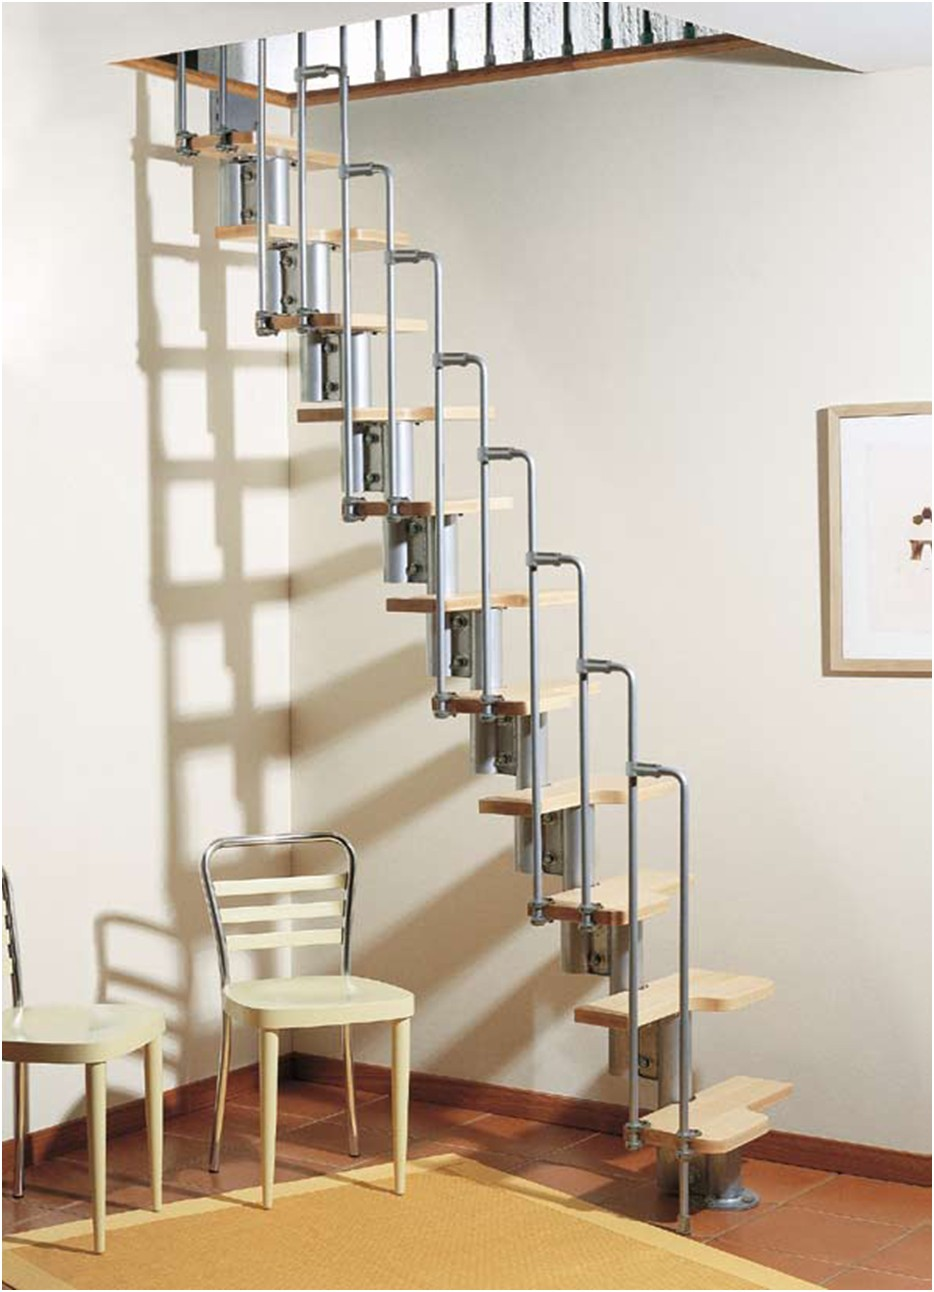 Charmant Karina Modular Staircase Kit   Metal, Steel And Wood Spiral Staircase    Fontanot